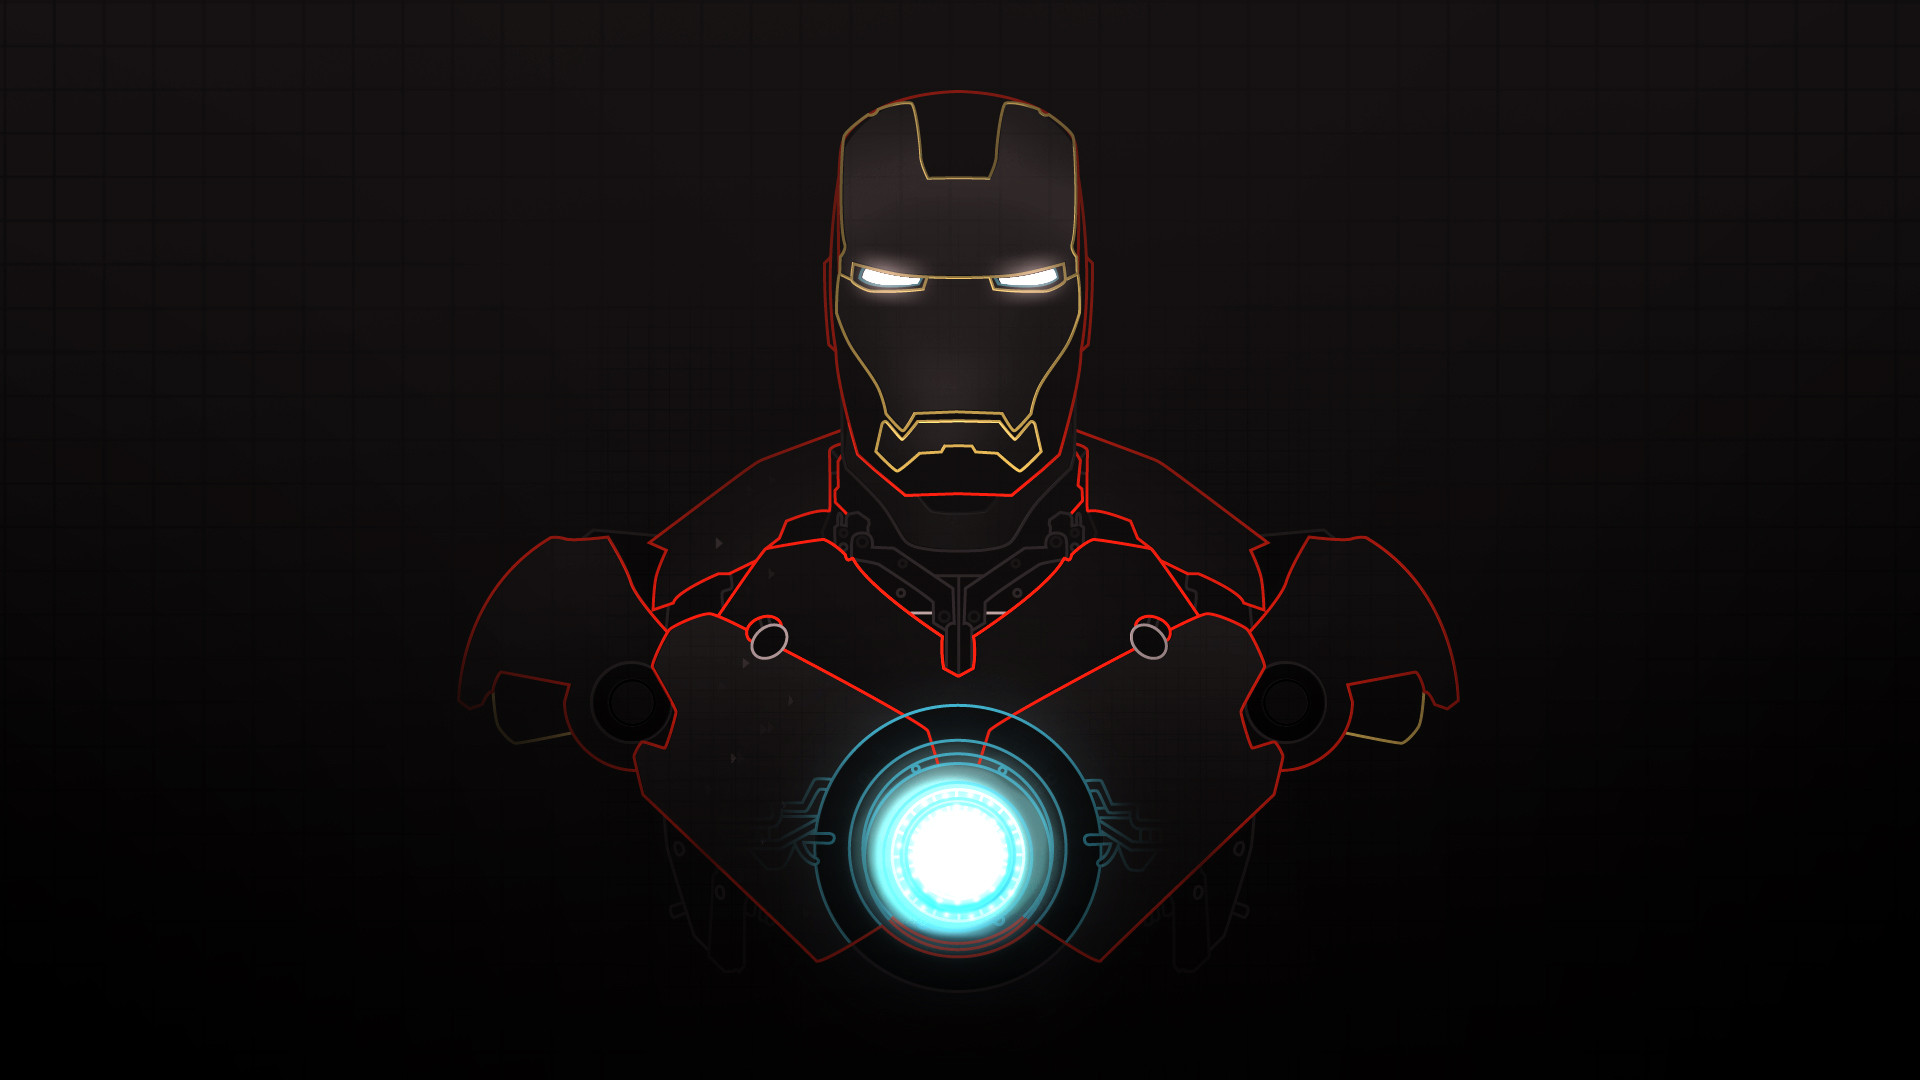 Wallpaper Abyss Explore the Collection Iron Man Comics Iron Man 282535 1920x1080